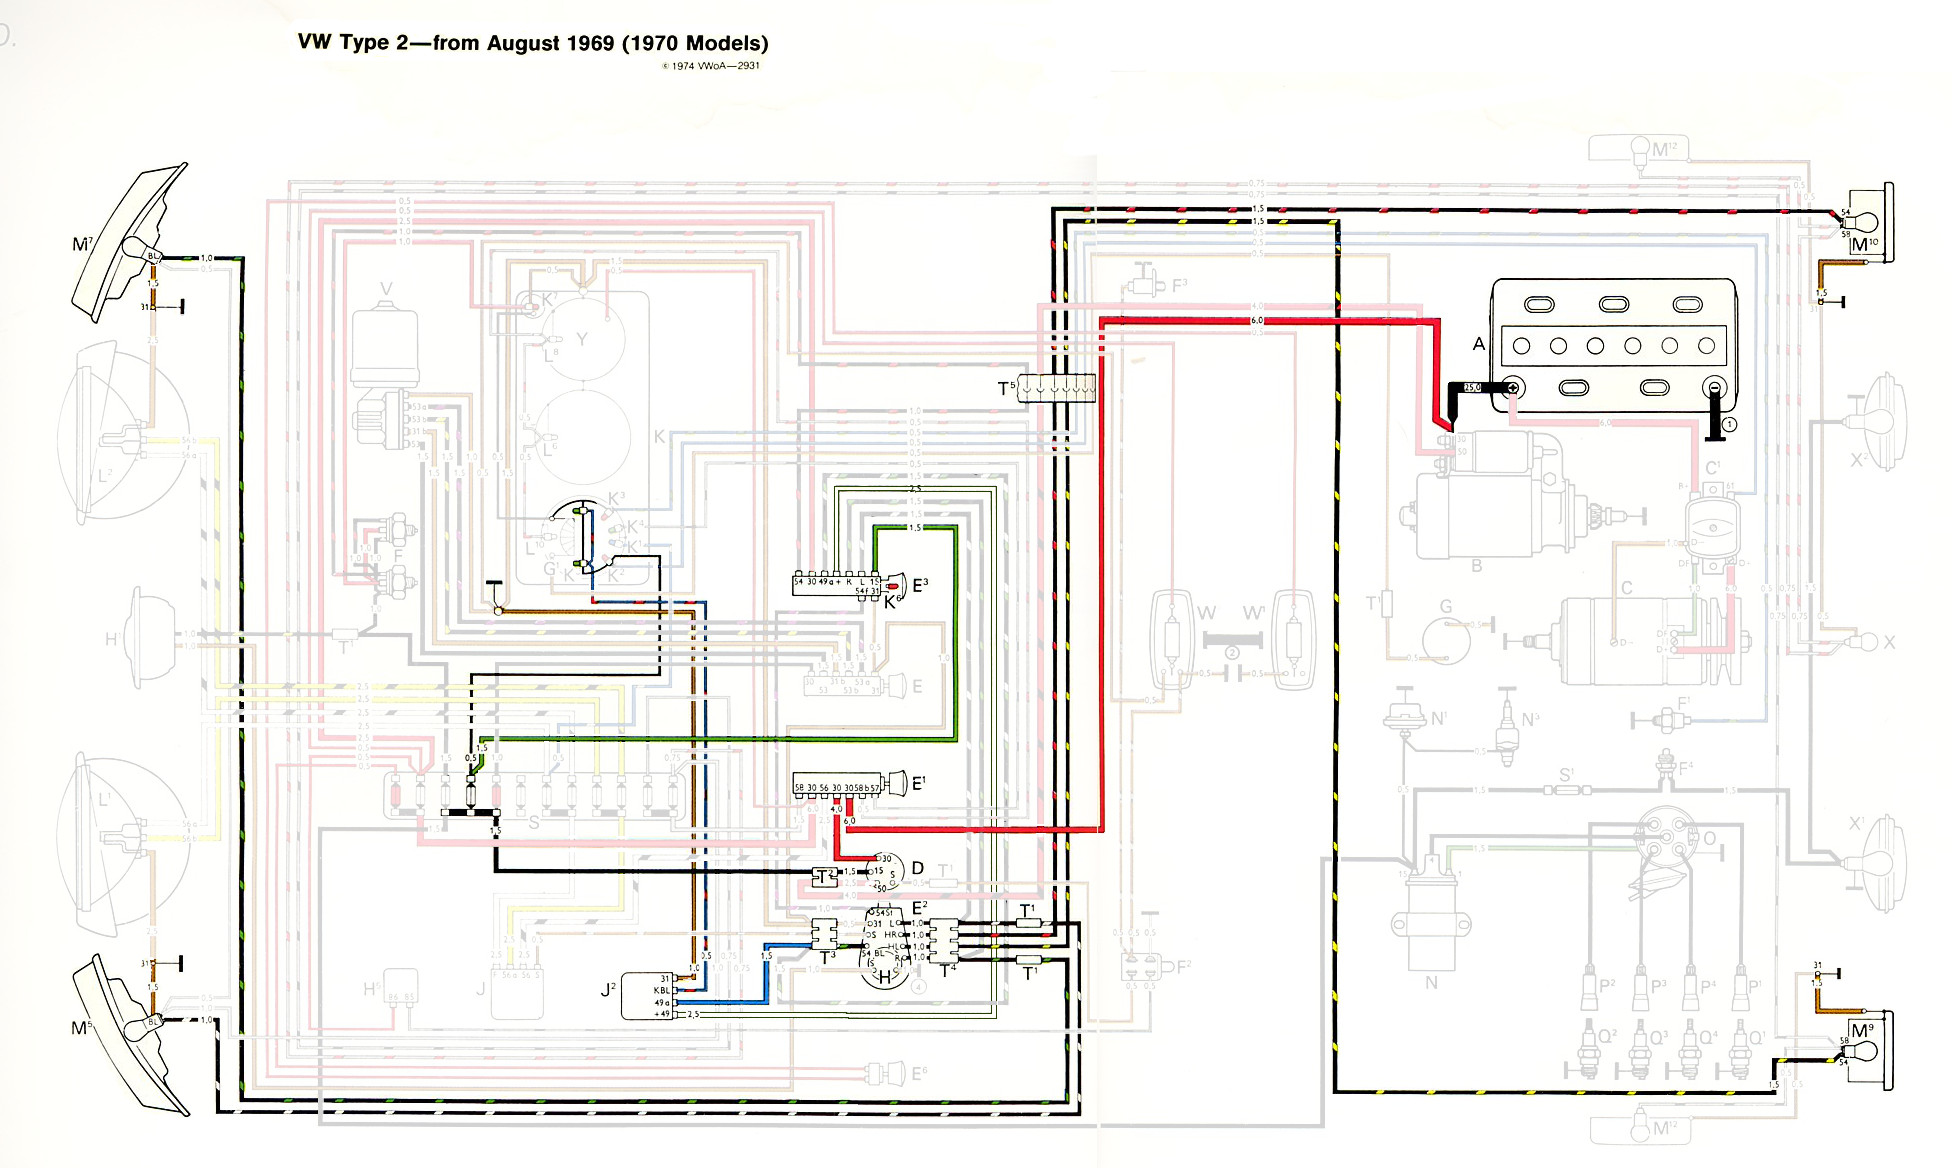 1970bus_signals thesamba com type 2 wiring diagrams 1970 vw beetle wiring diagram at n-0.co